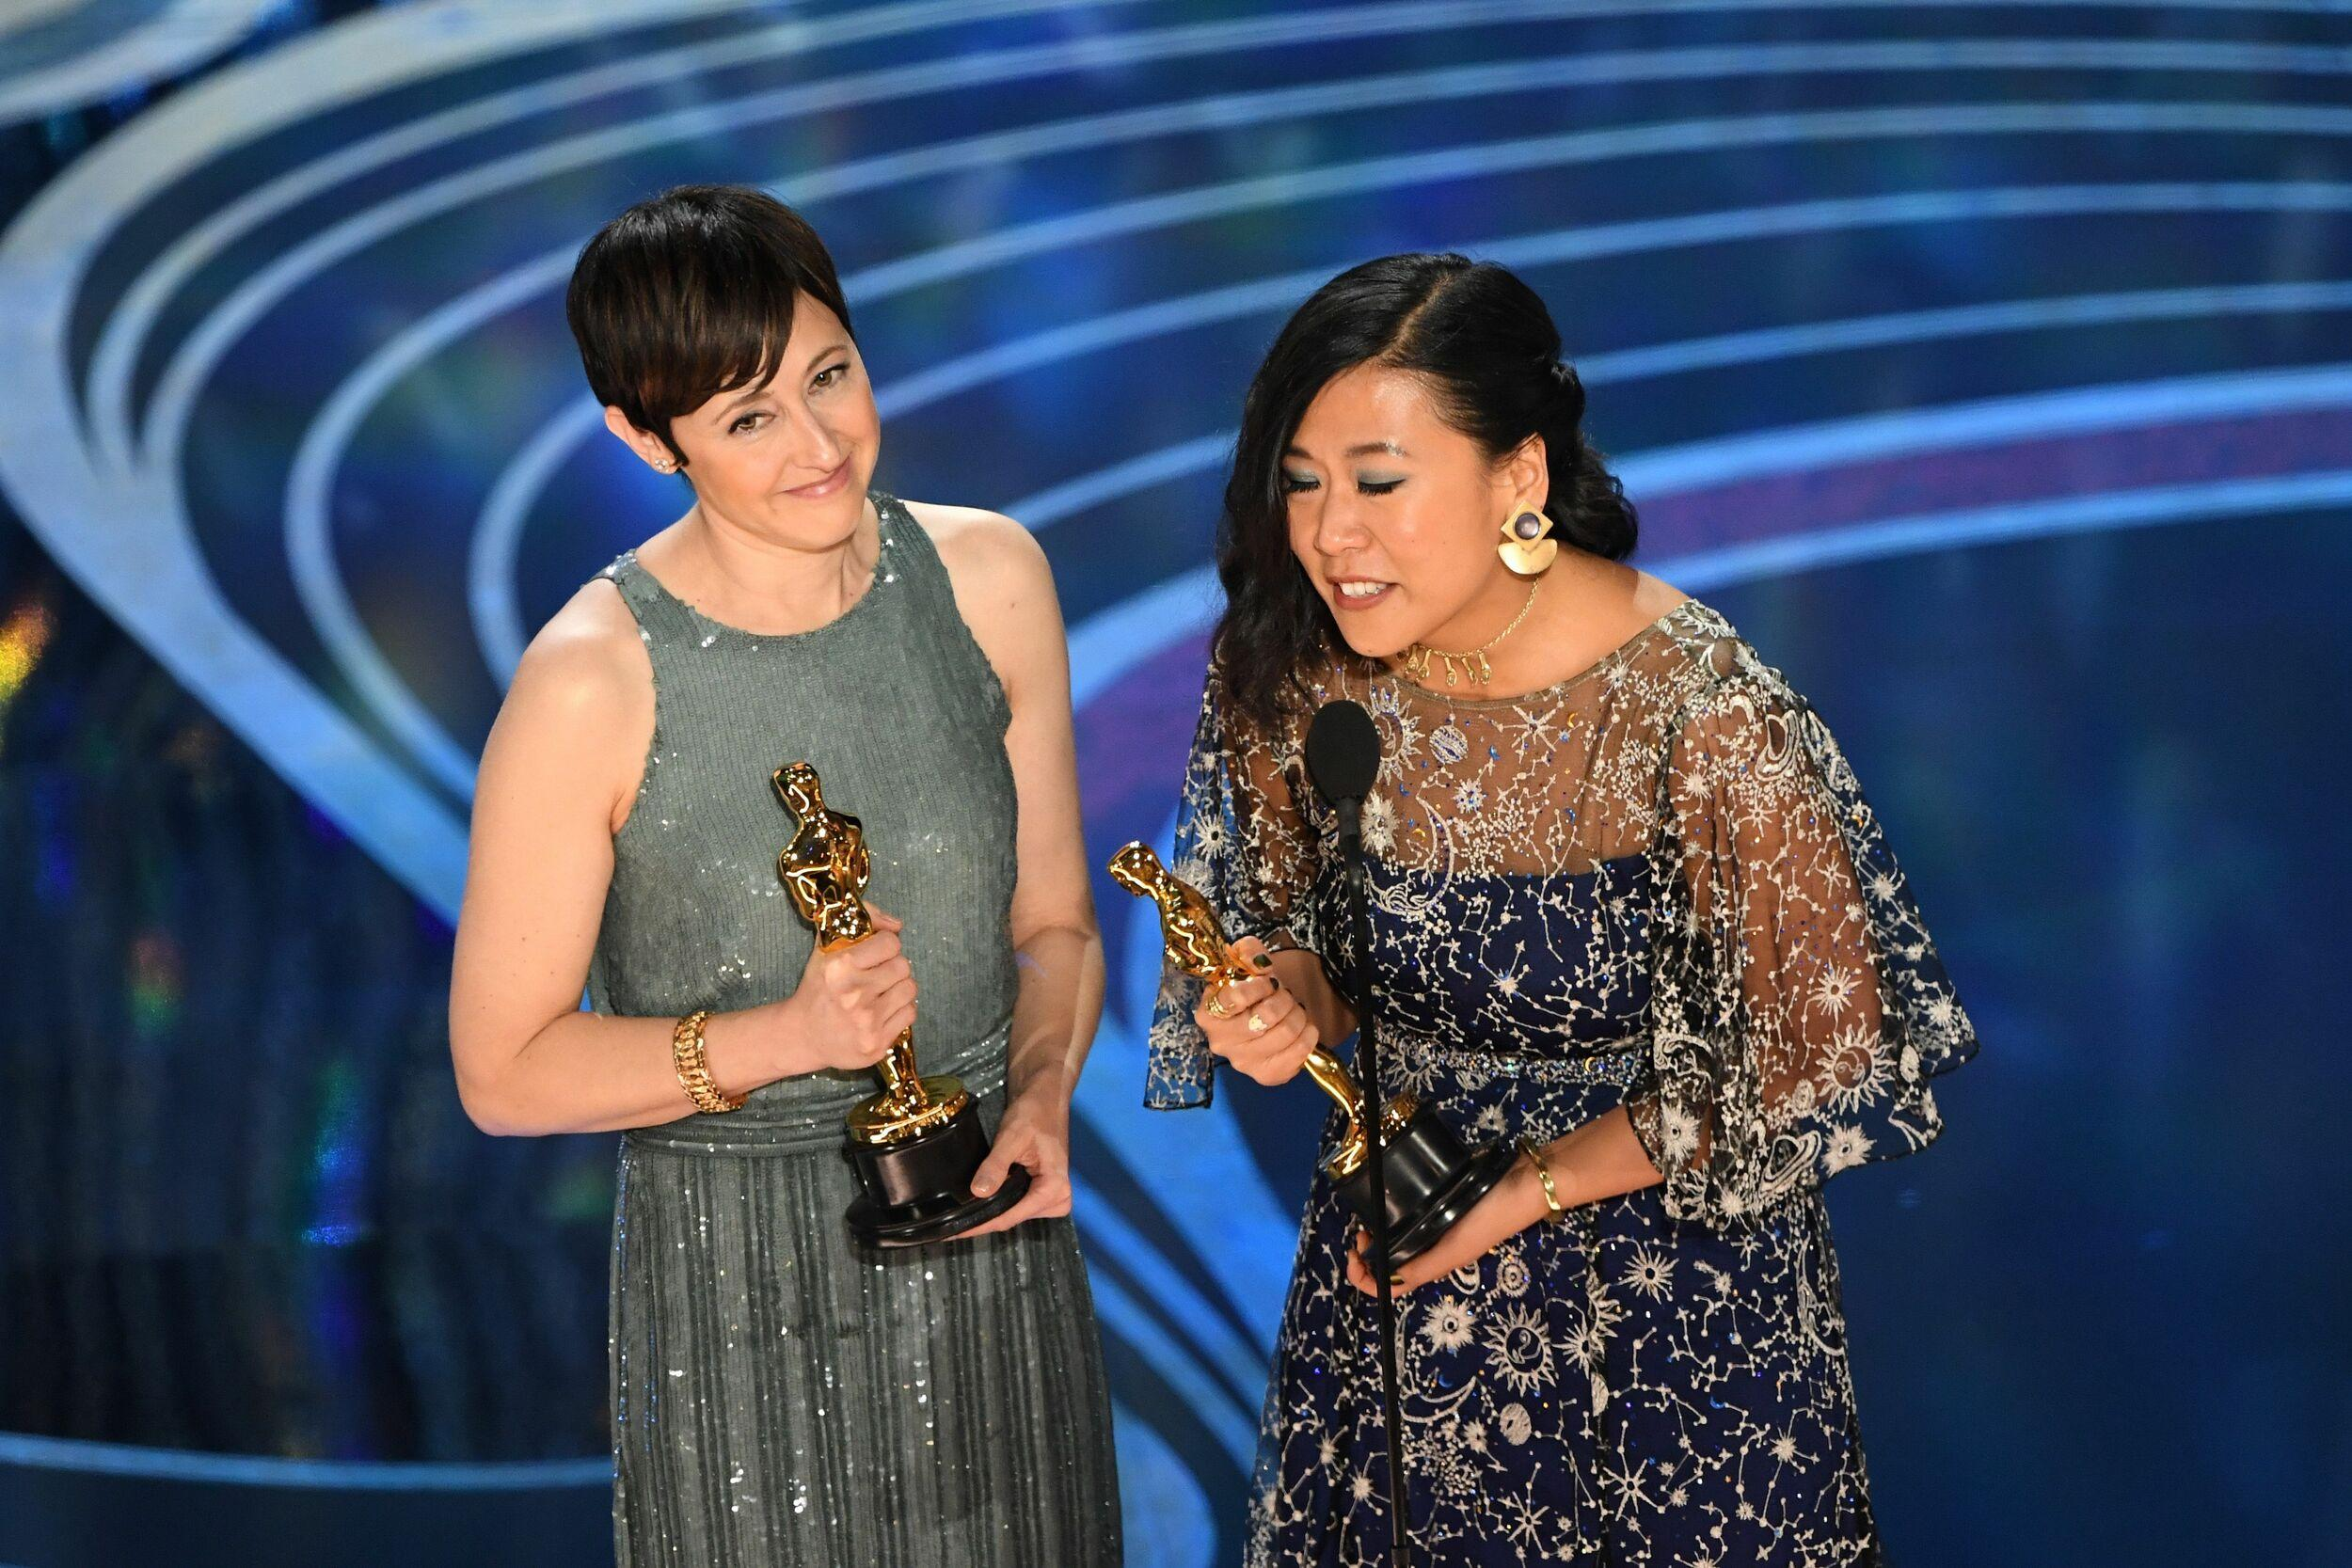 Best Animated Short Film nominees for 'Bao' Domee Shi (R) and Becky Neiman-Cobb accepts the award for Best Animated Short Film during the 91st Annual Academy Awards at the Dolby Theatre in Hollywood, California on February 24, 2019. (Photo by VALERIE MACON / AFP)        (Photo credit should read VALERIE MACON/AFP/Getty Images)